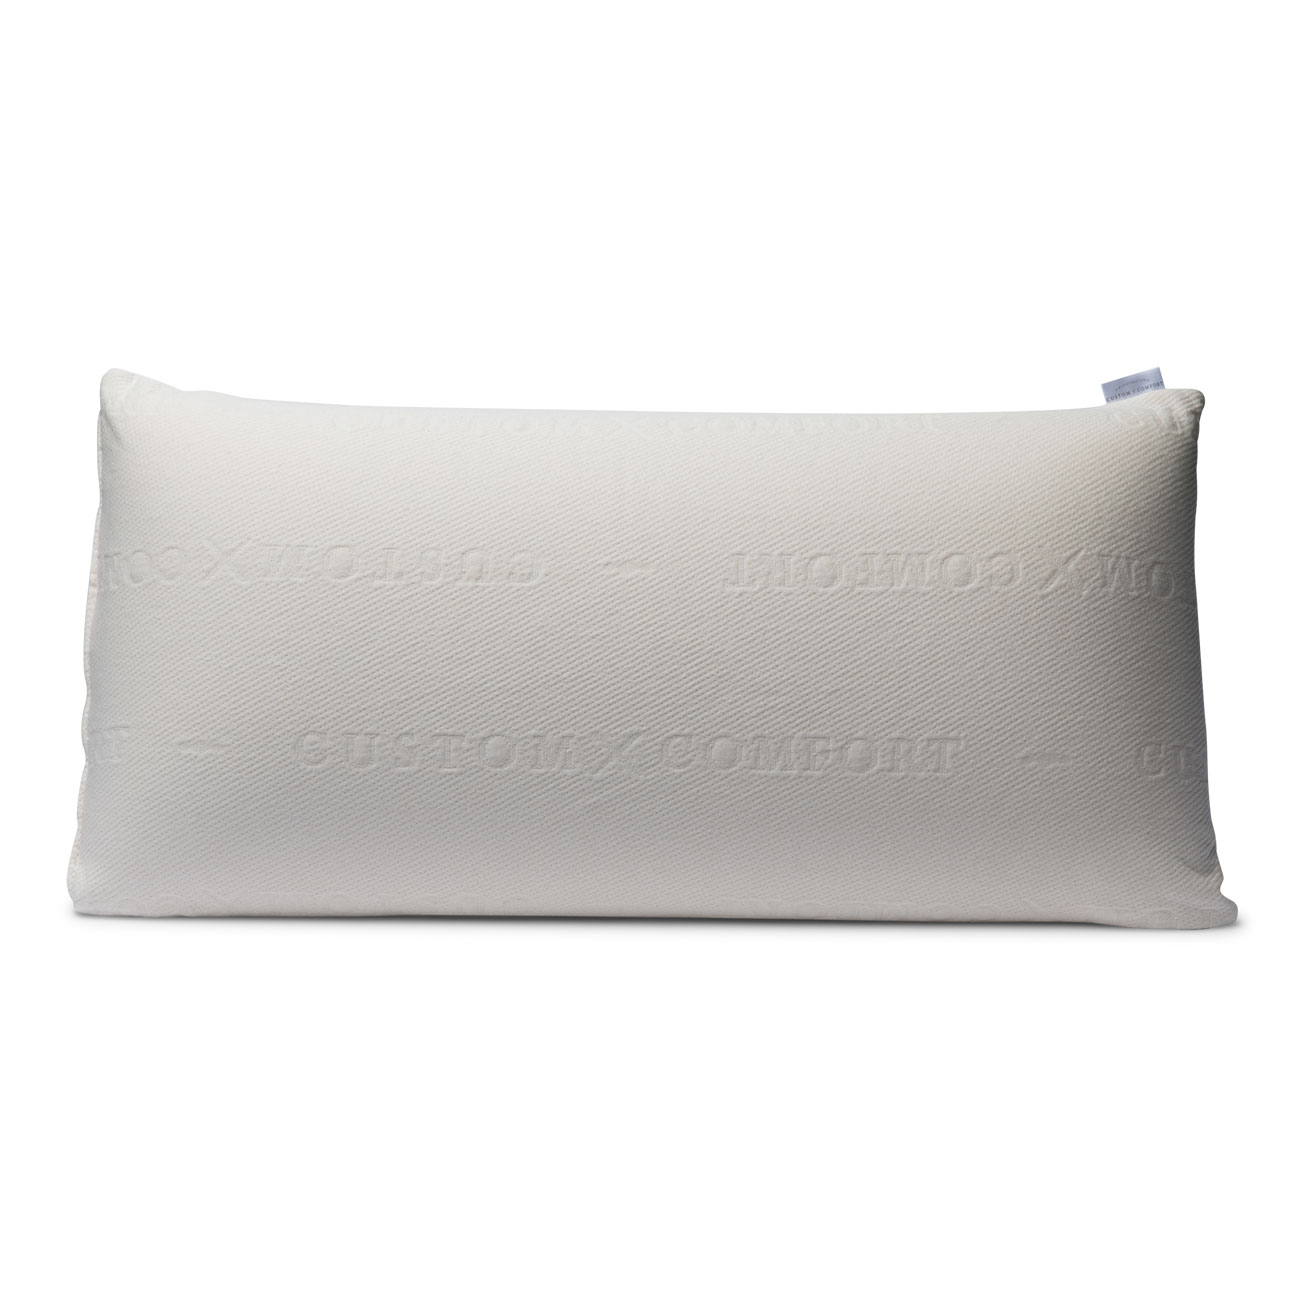 Latex Pillow Molded Latex Pillow